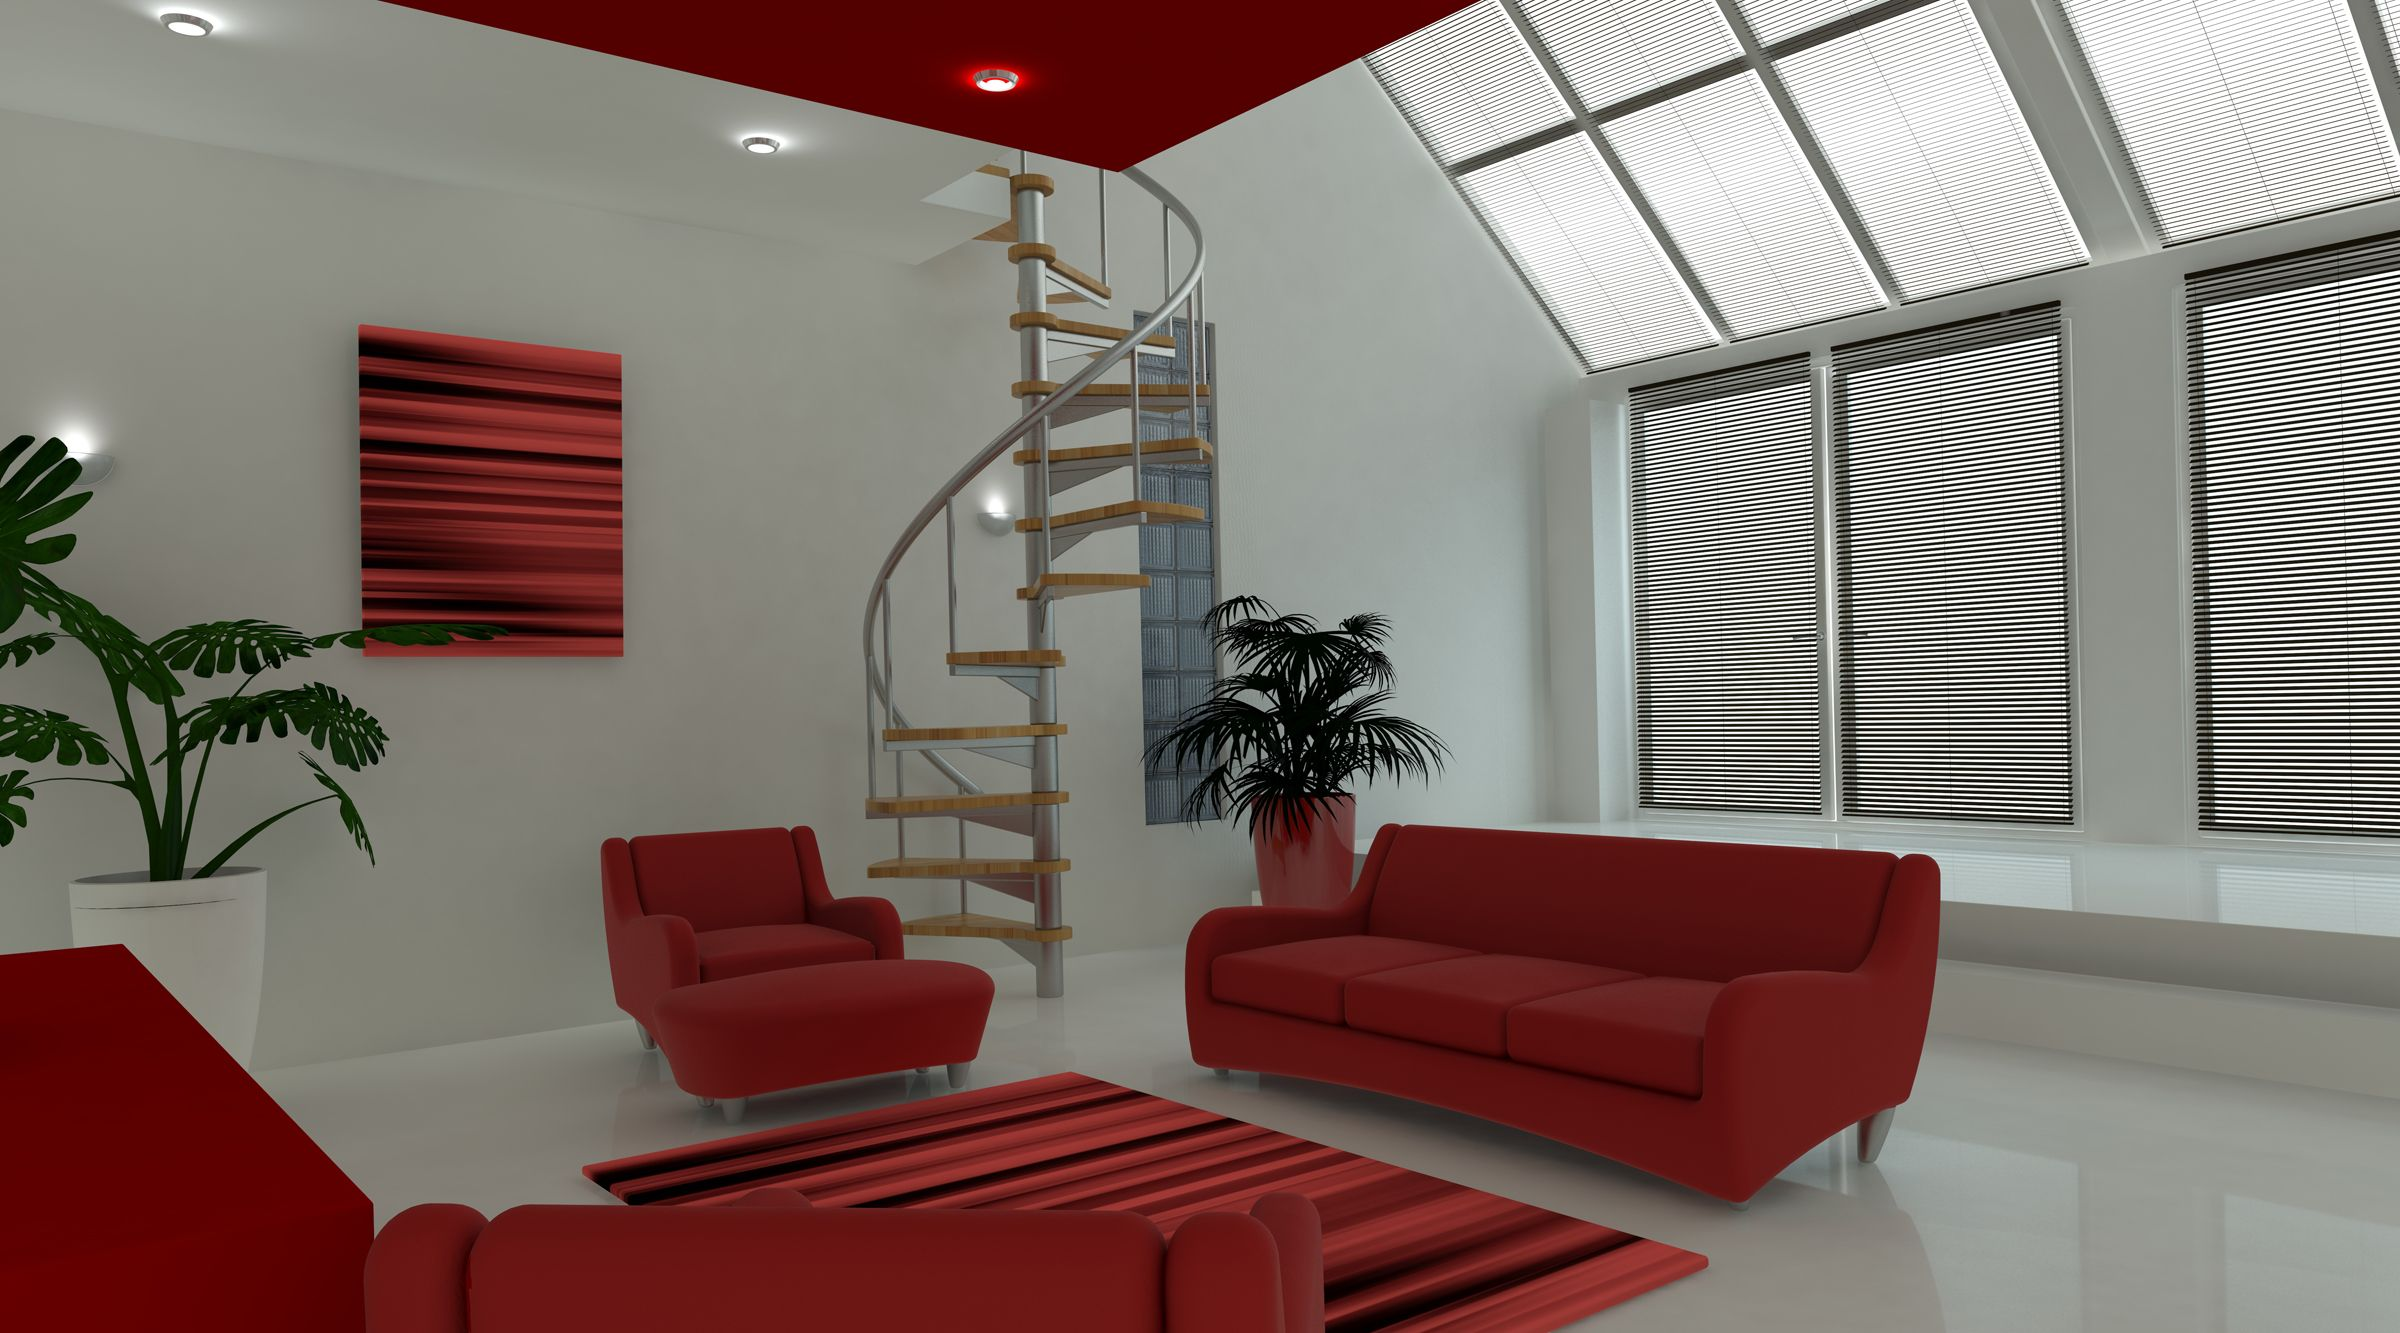 Living Room Design App Unique Room Planner Free Online Design Paint Not Architecture Virtual Decorating Design